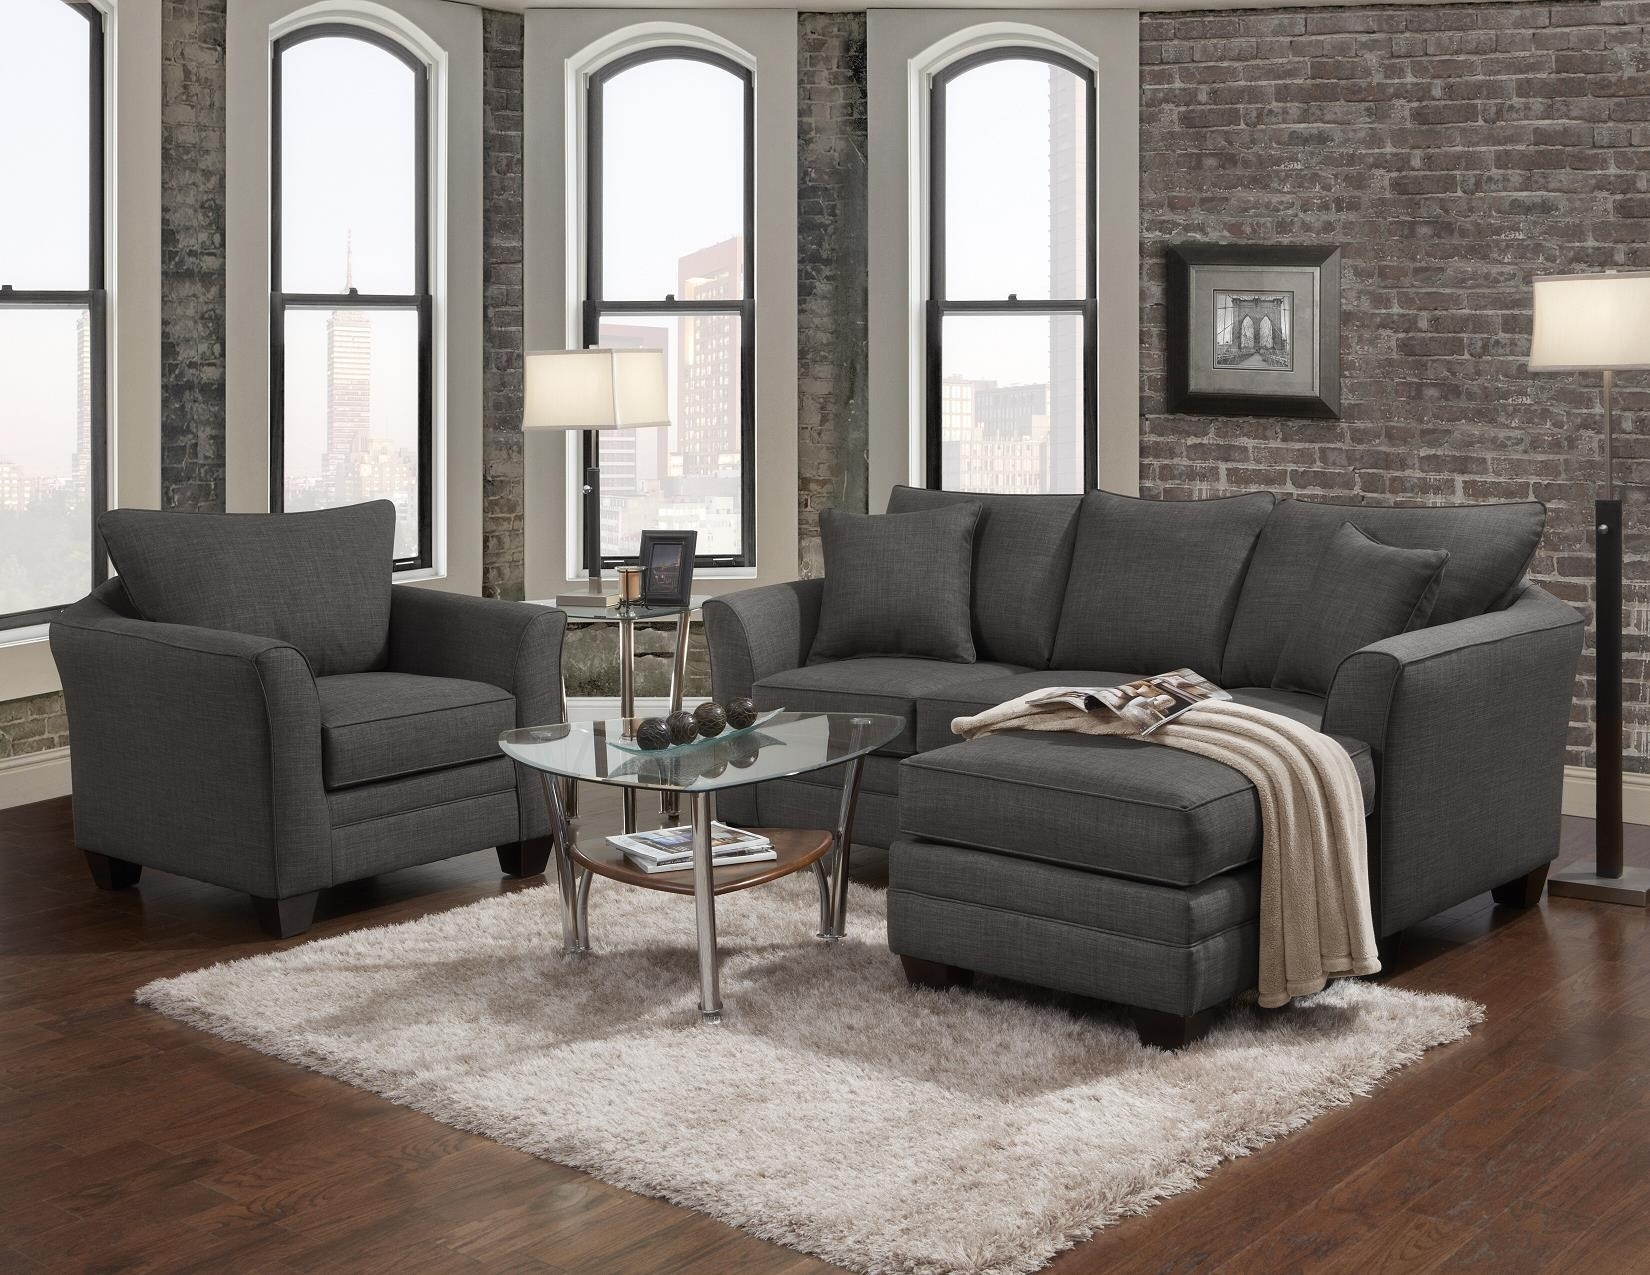 Sofa Bed Sale London Ontario 10 43 Choices Of London Ontario Sectional Sofas Sofa Ideas